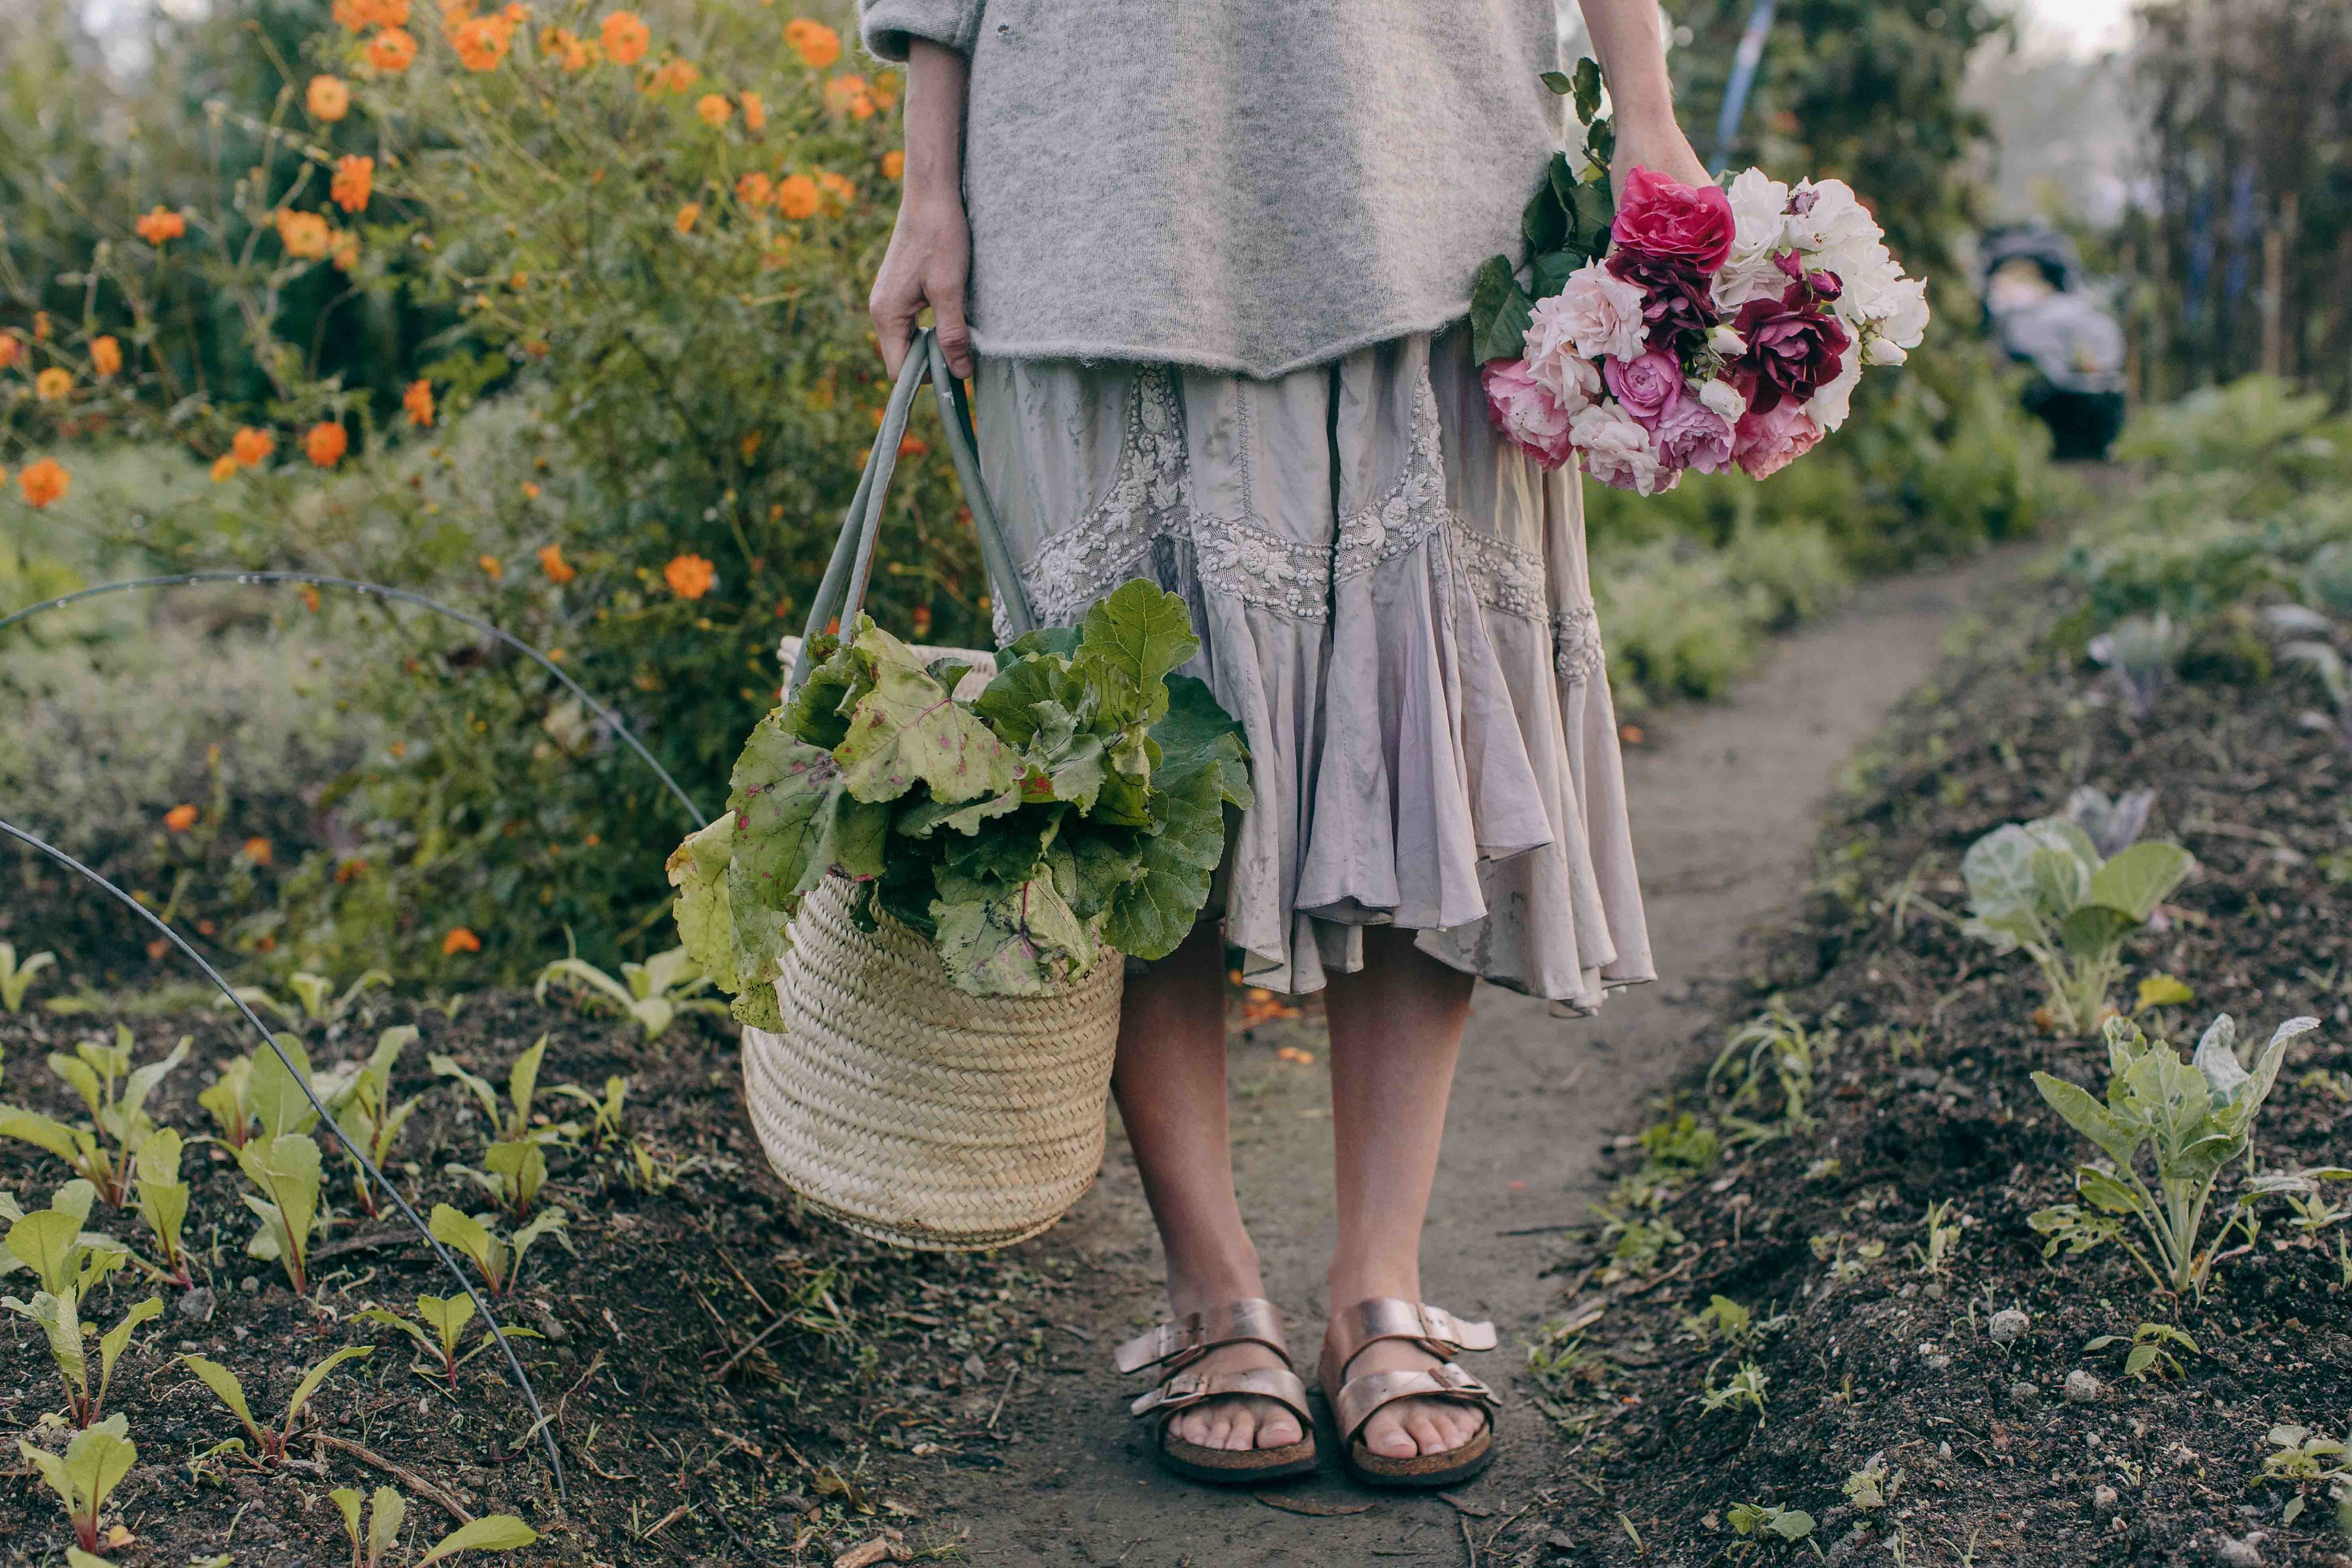 Wild delicious Gallery image Amber on garden path wit hforaged basked and flowers